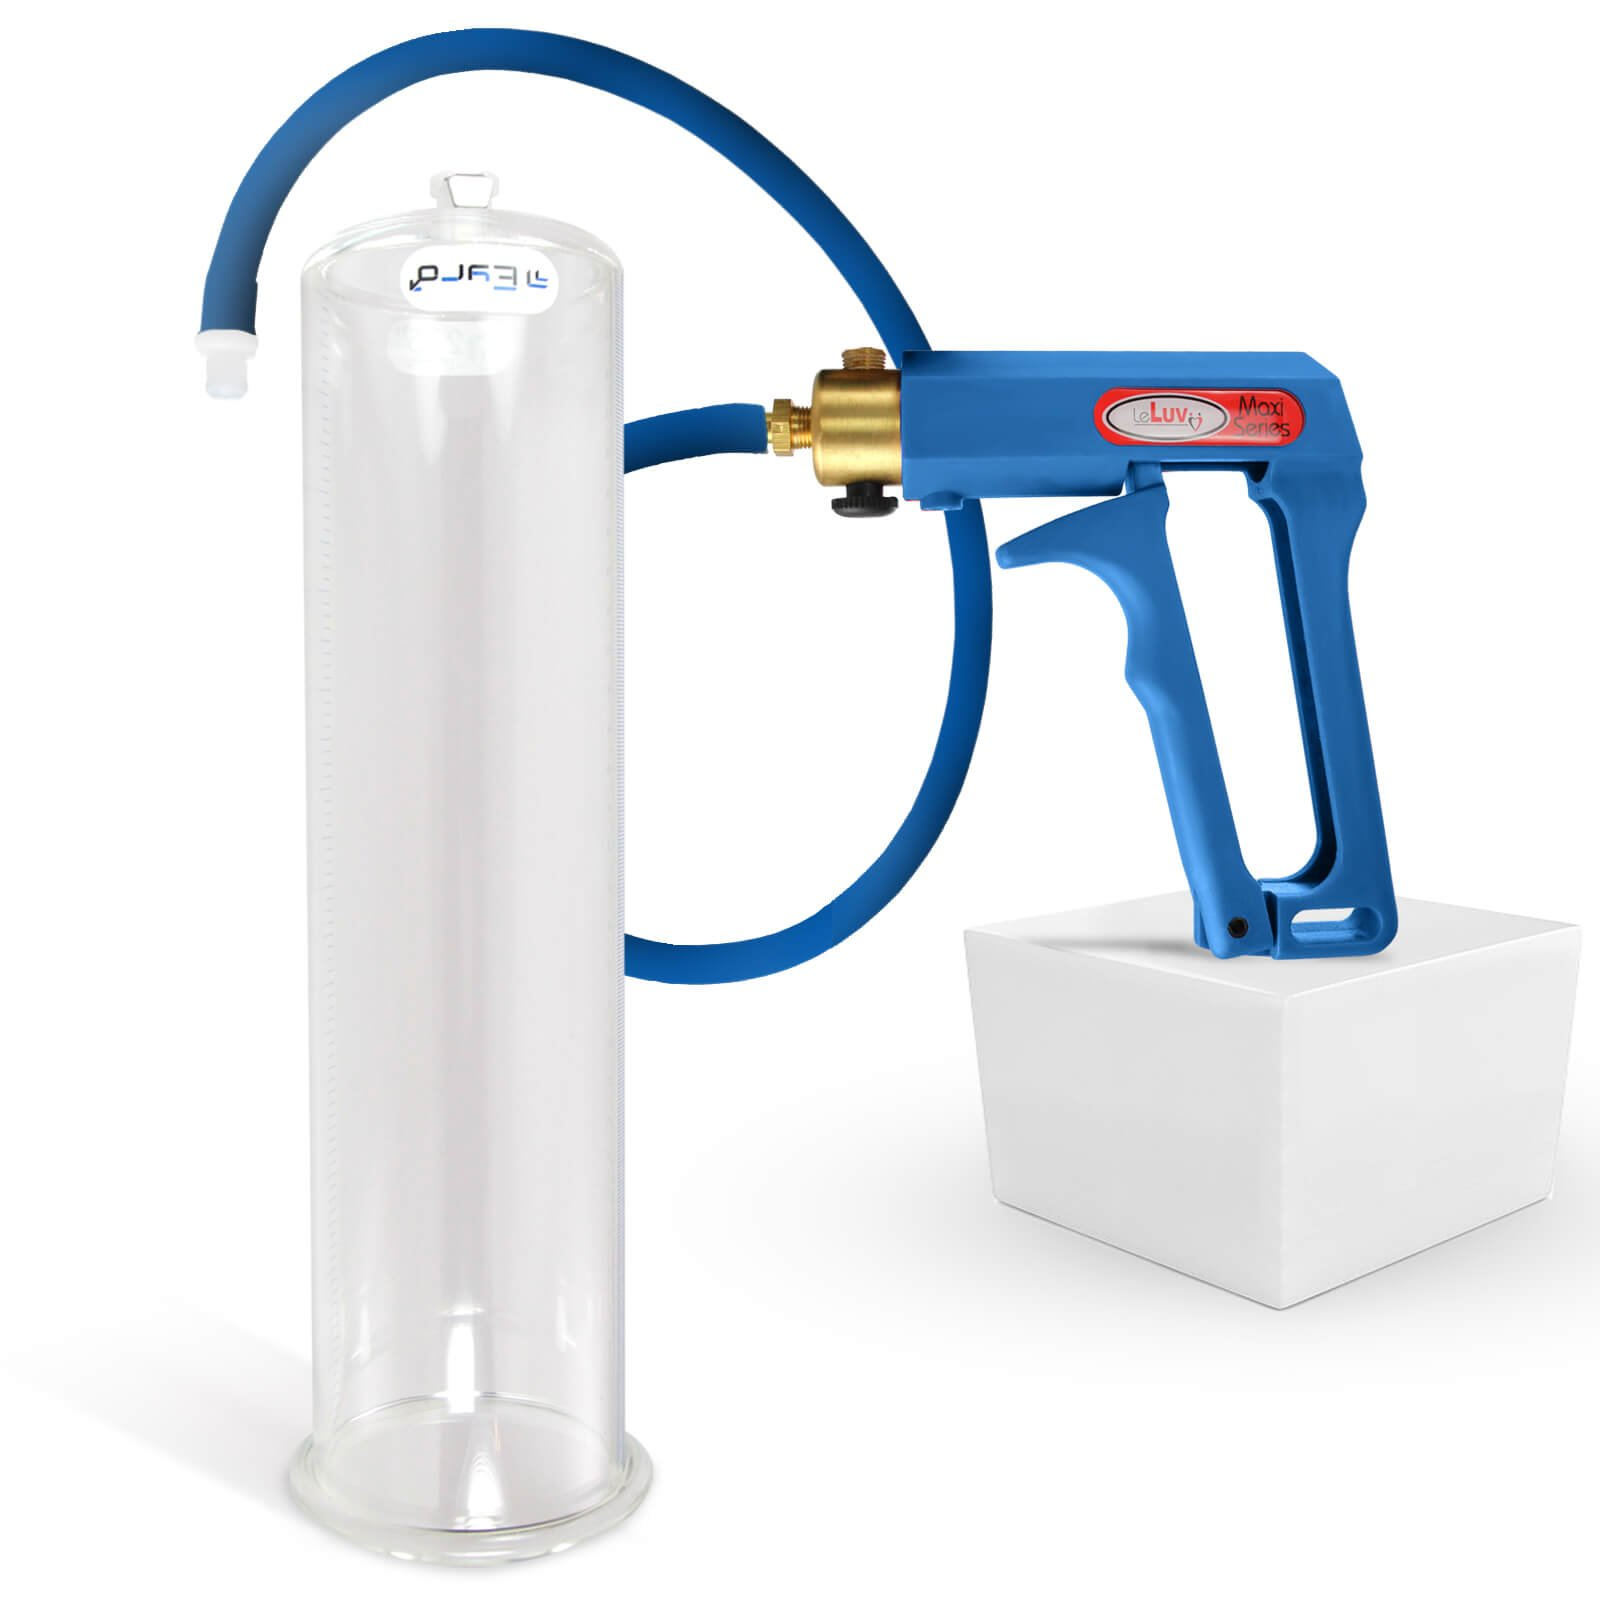 LeLuv Maxi Blue Penis Pump Bundle with Premium Silicone Hose 12 inch x 3.25 inch Cylinder by LeLuv